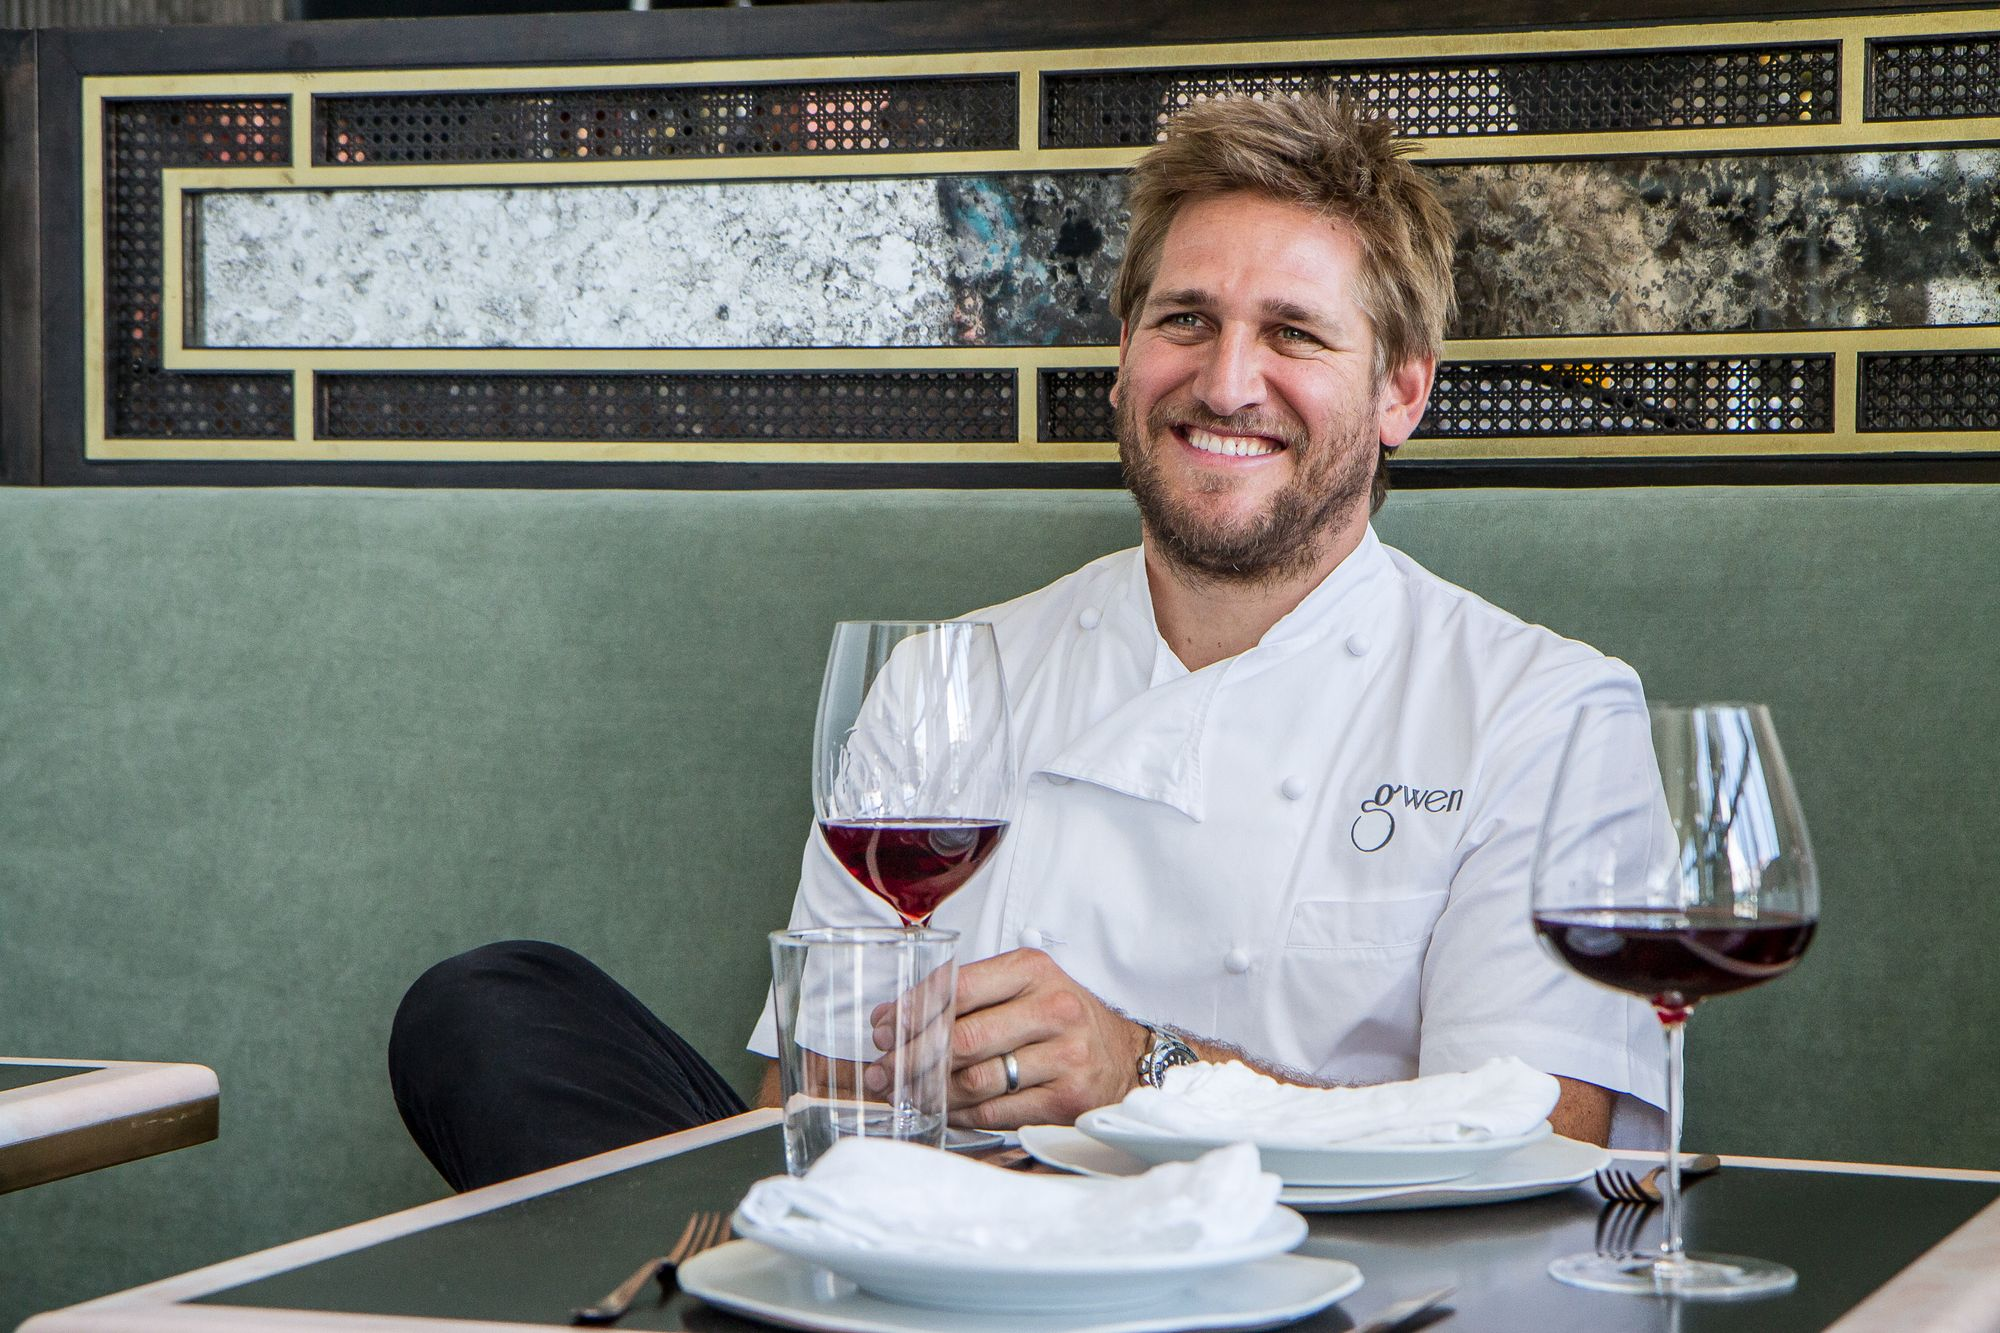 Picture of Chef Curtis Stone from Gwen Restaurant in LA